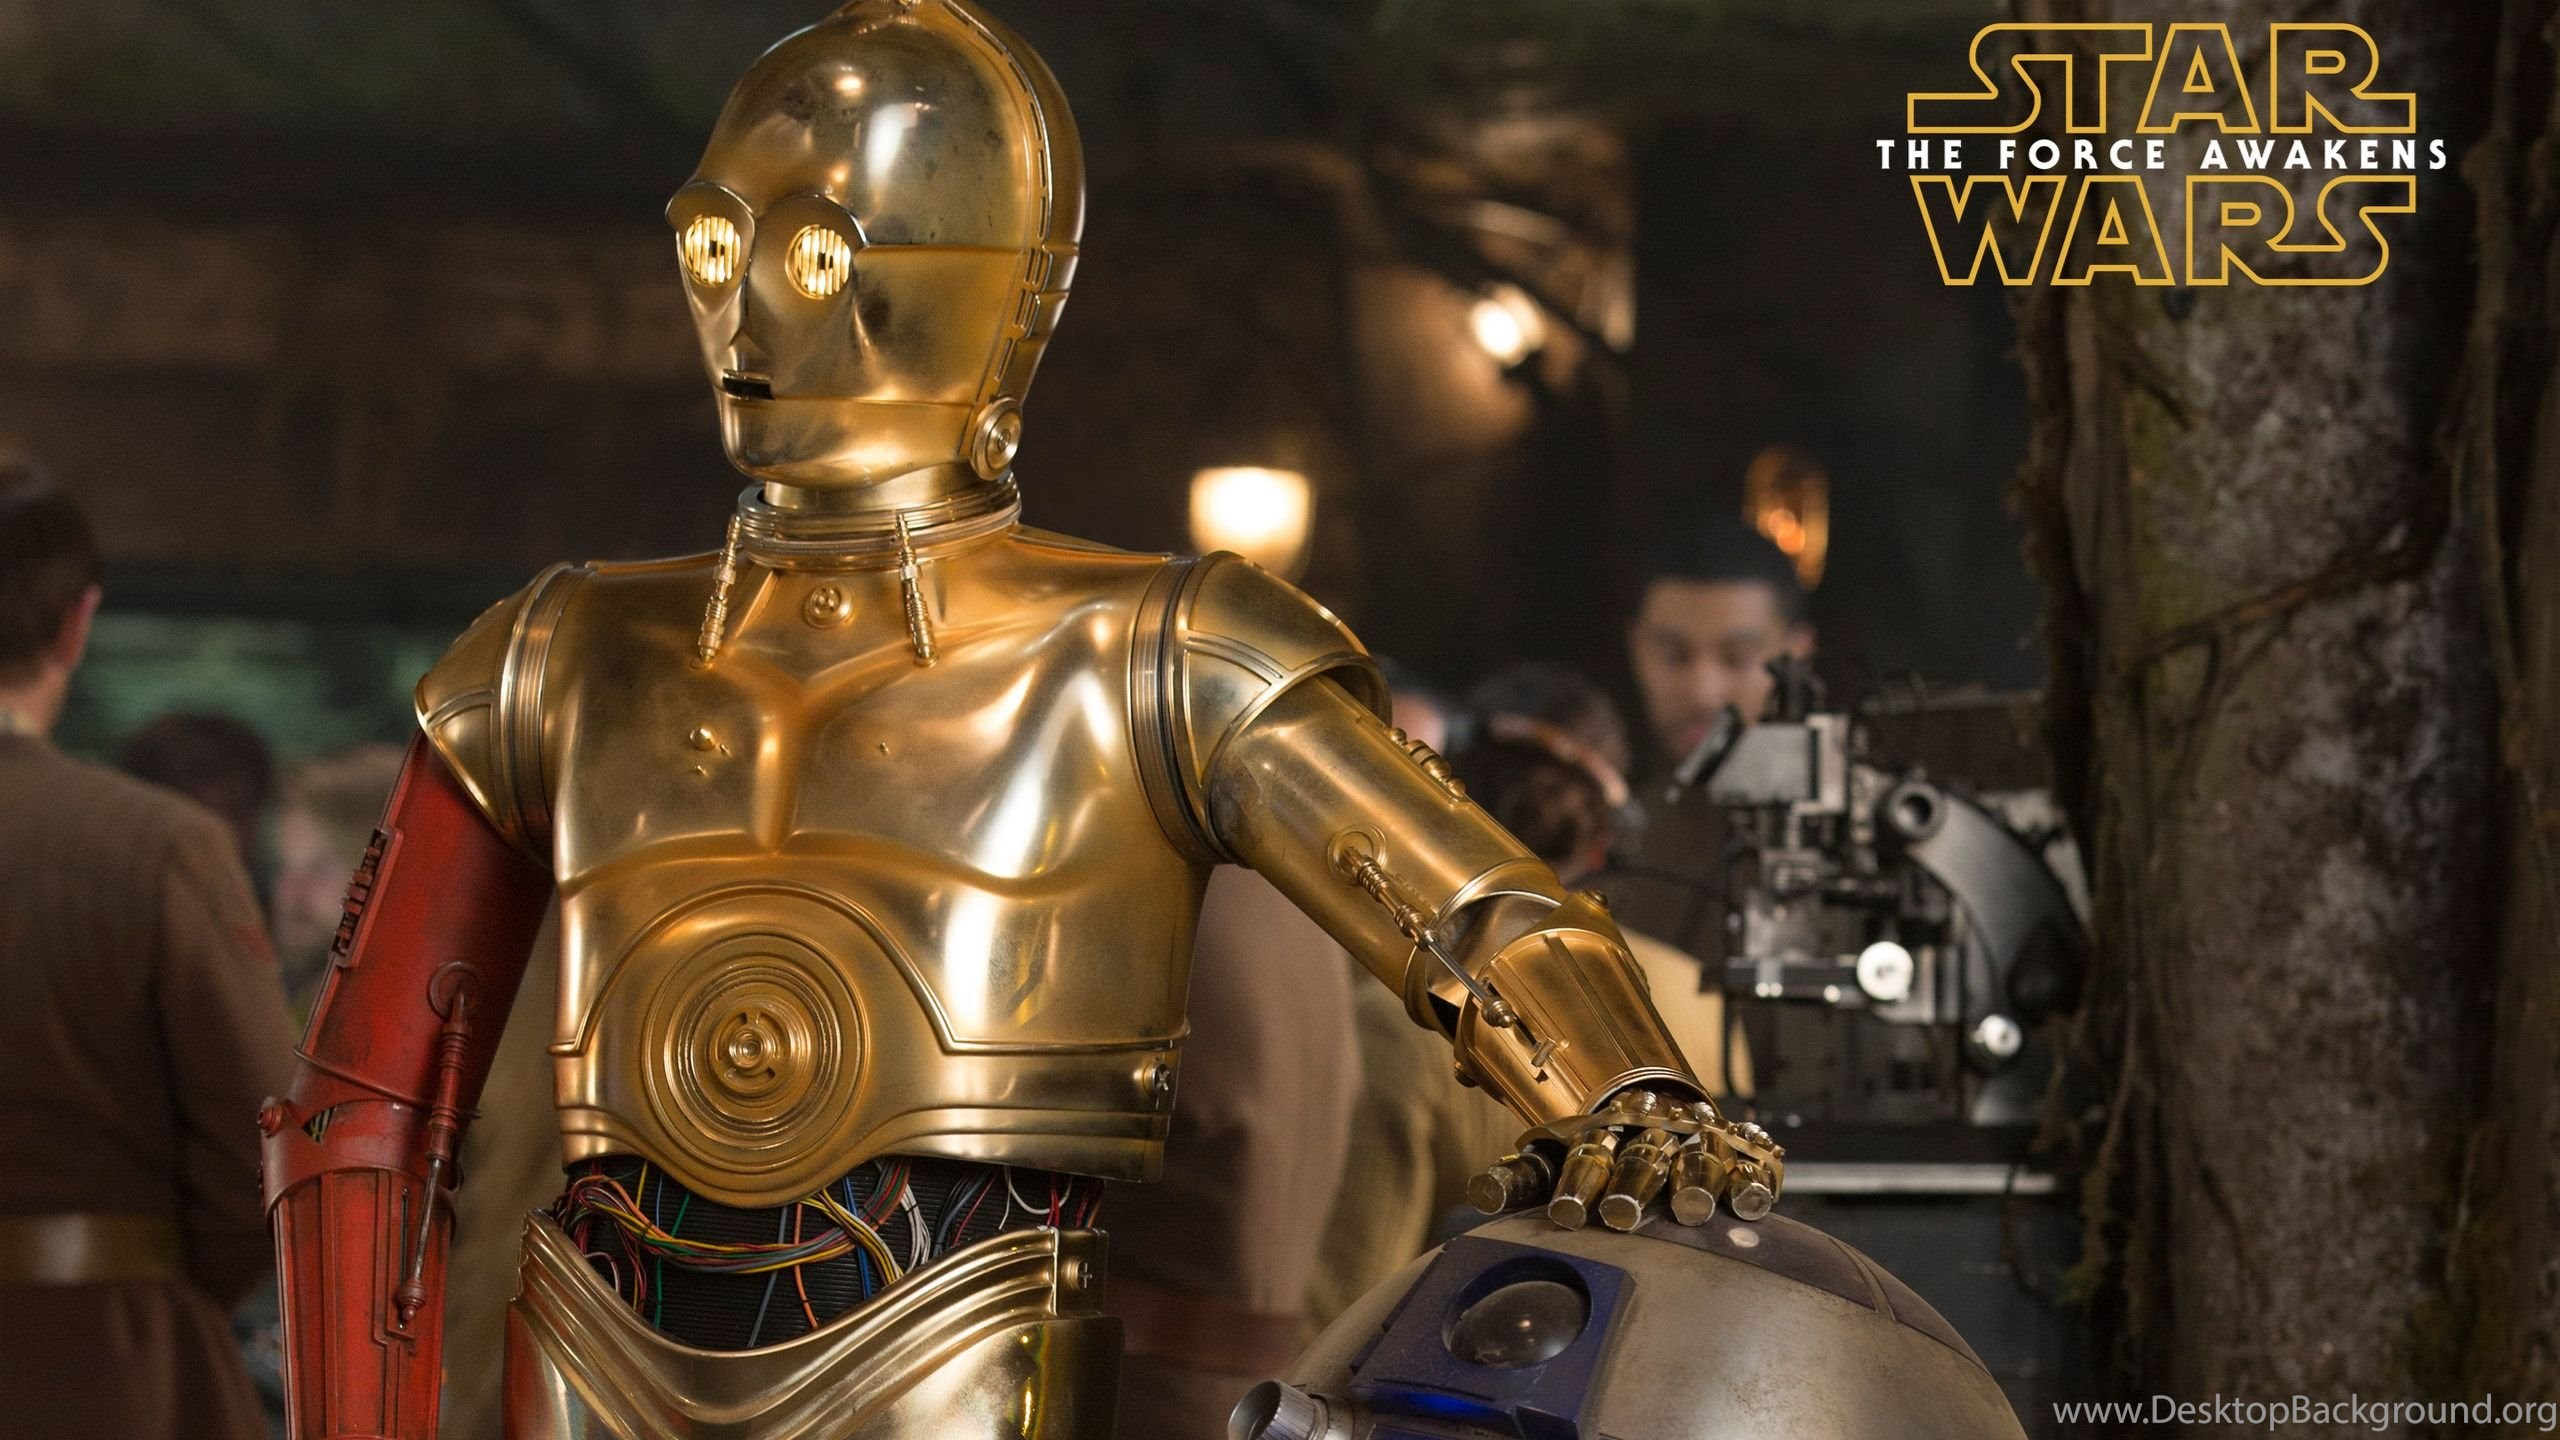 C 3po In Star Wars The Force Awakens Wallpapers Movie Wallpapers Desktop Background